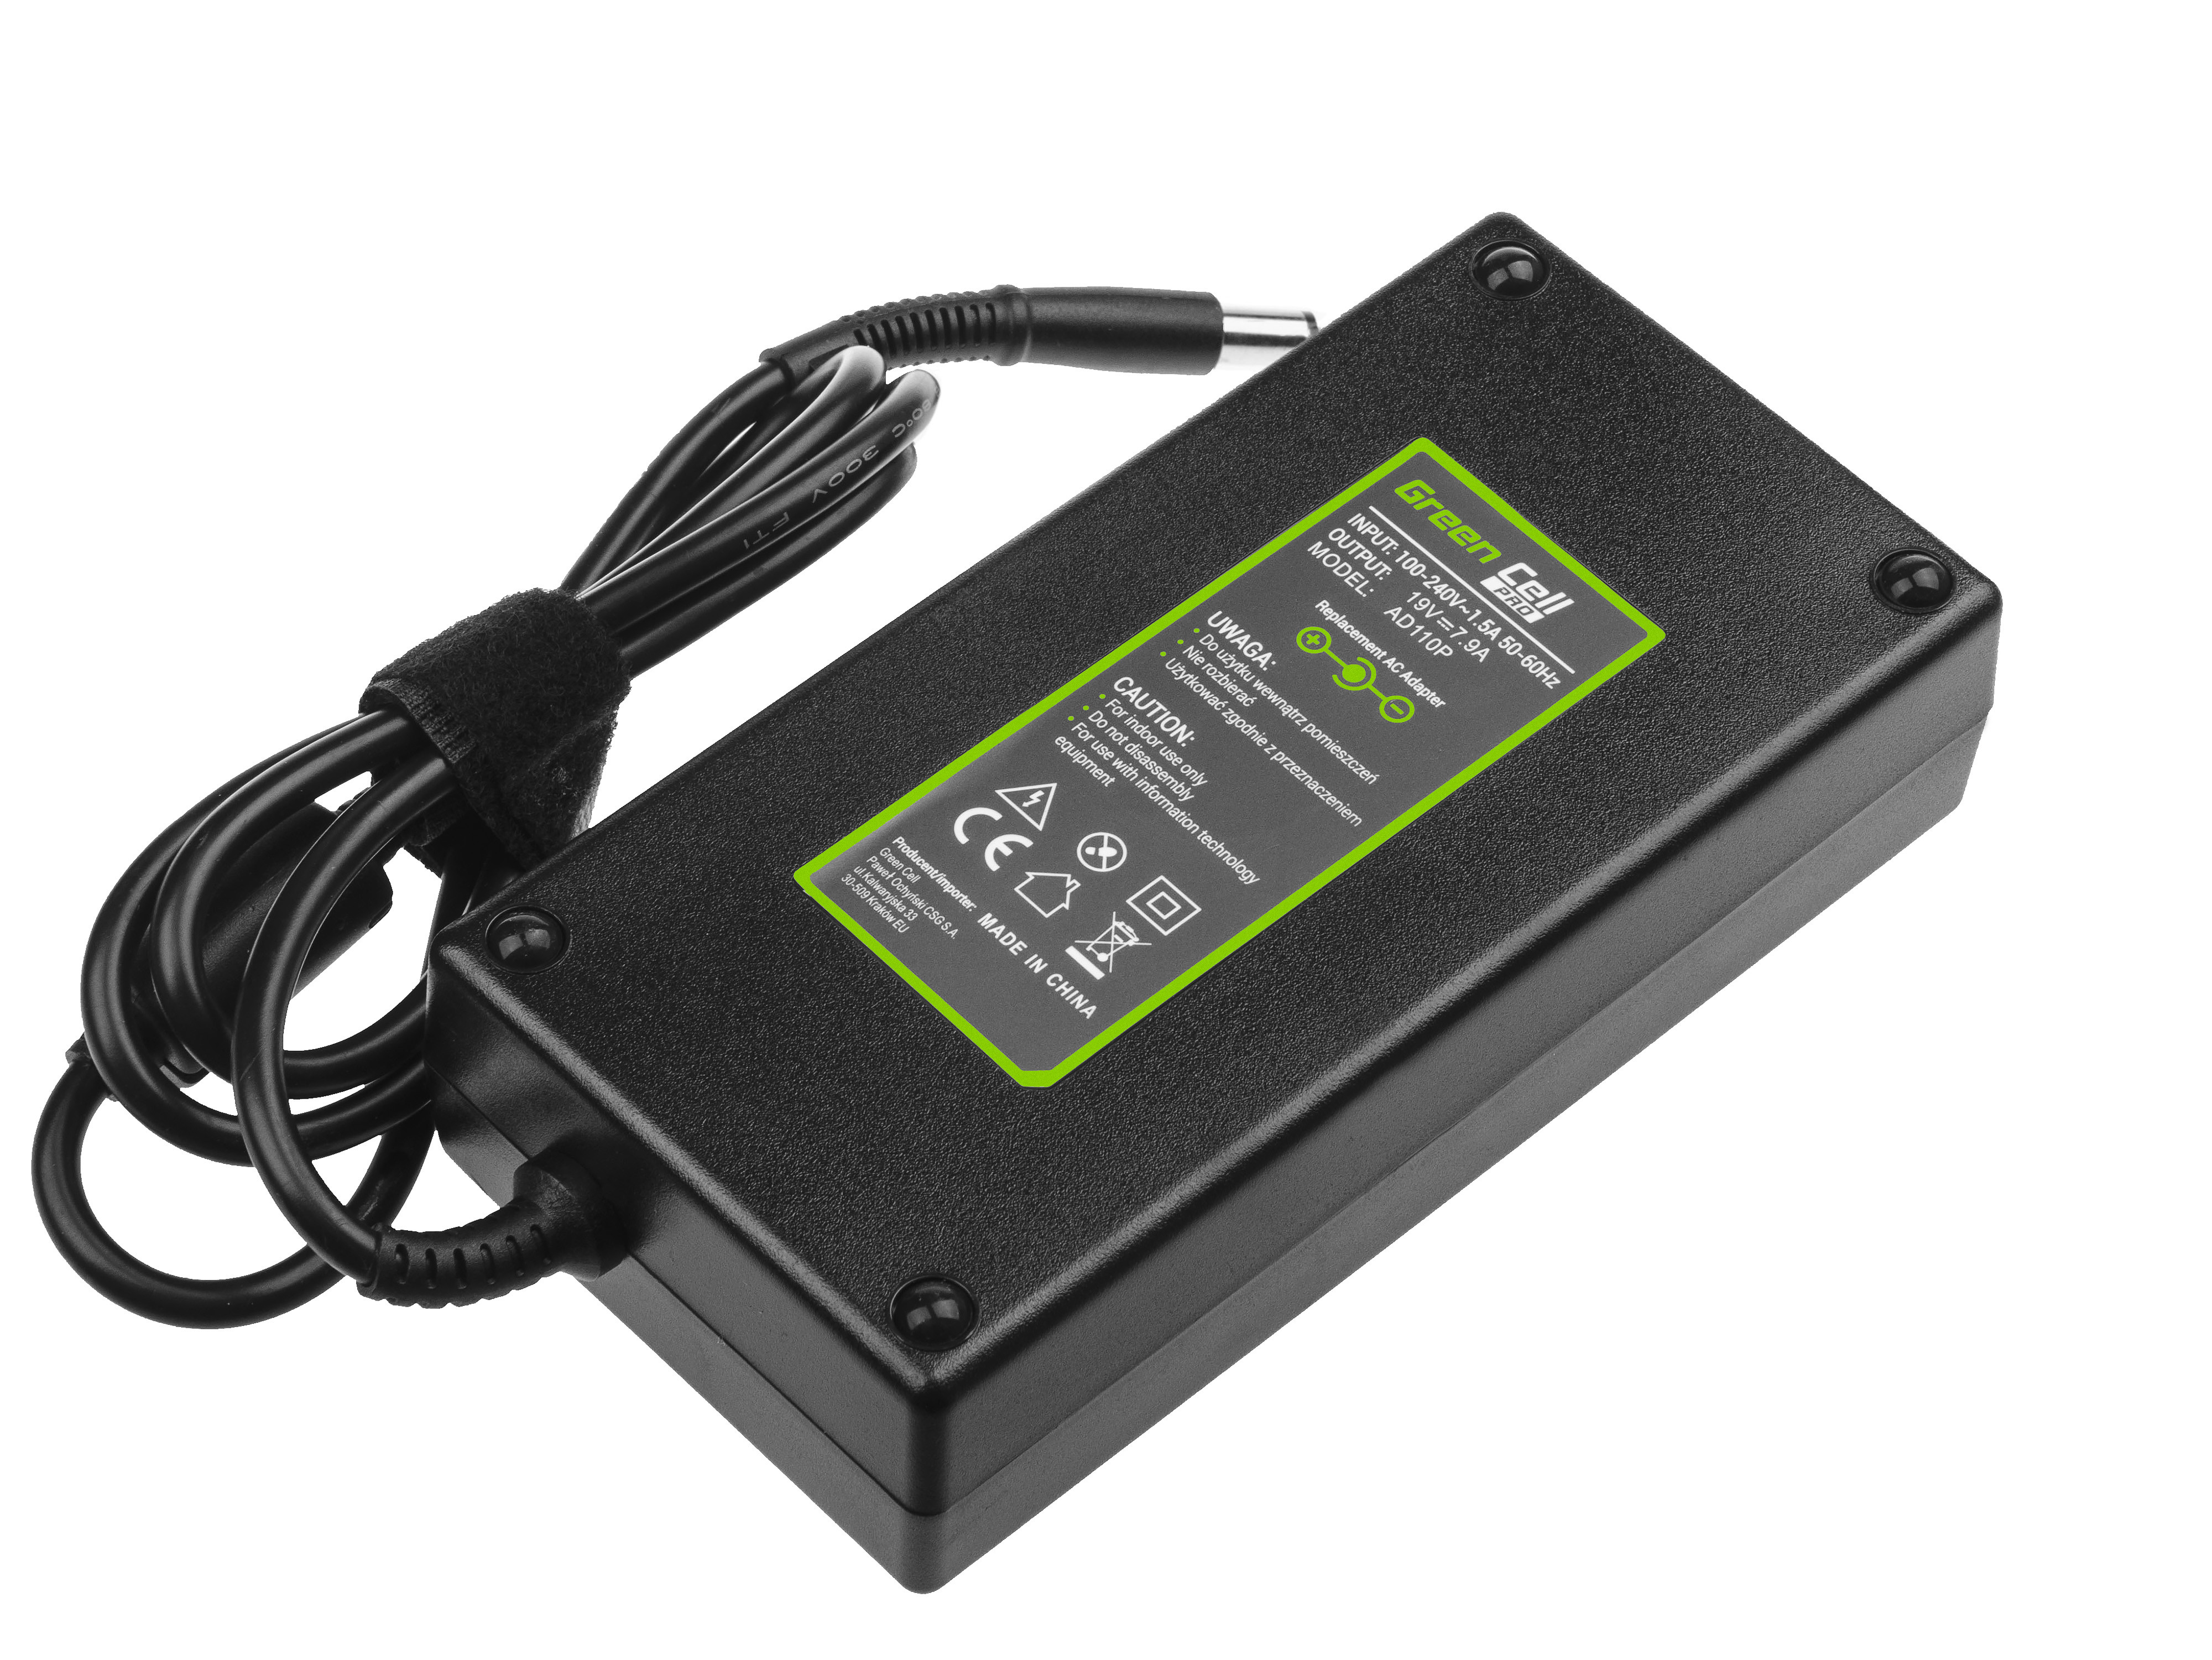 Green Cell PRO Charger  AC Adapter for HP EliteBook 8530p 8530w 8540p 8540w 8560p 8560w 8570w 8730w ZBook 15 G1 G2 19V 7.9A 150